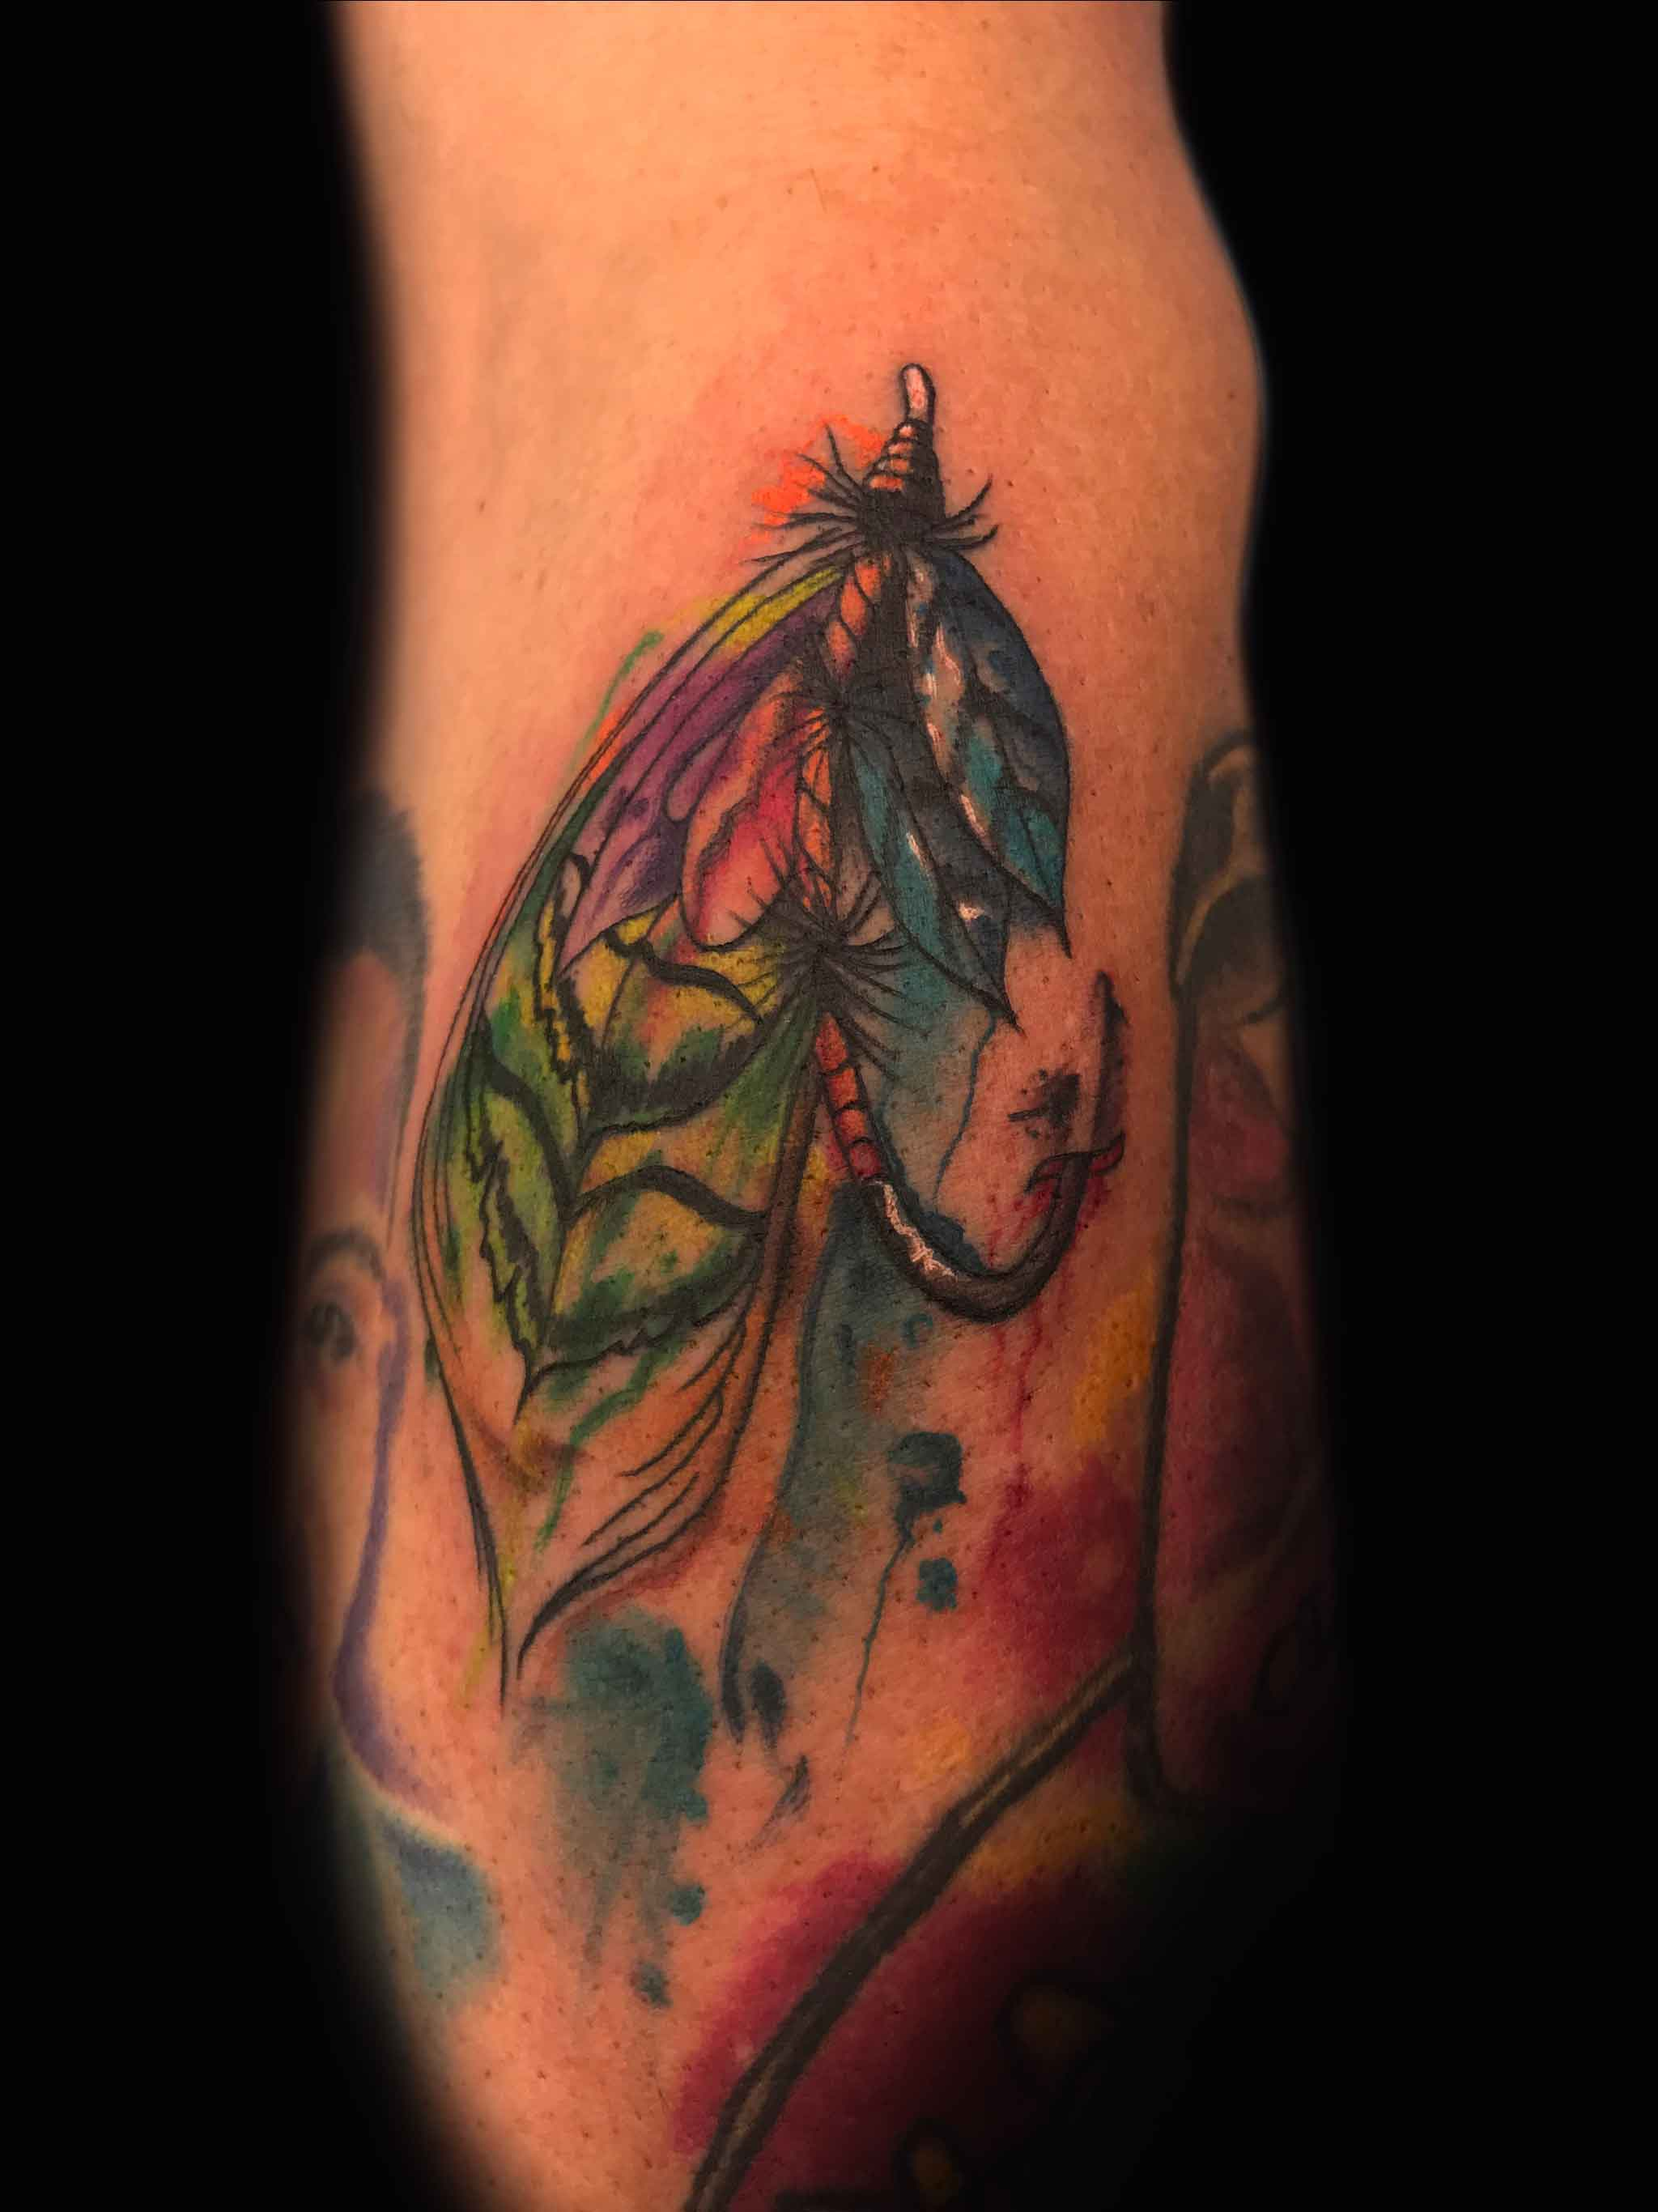 watercolor-tattoo-design-by-Roger-Solis-in-San-Diego